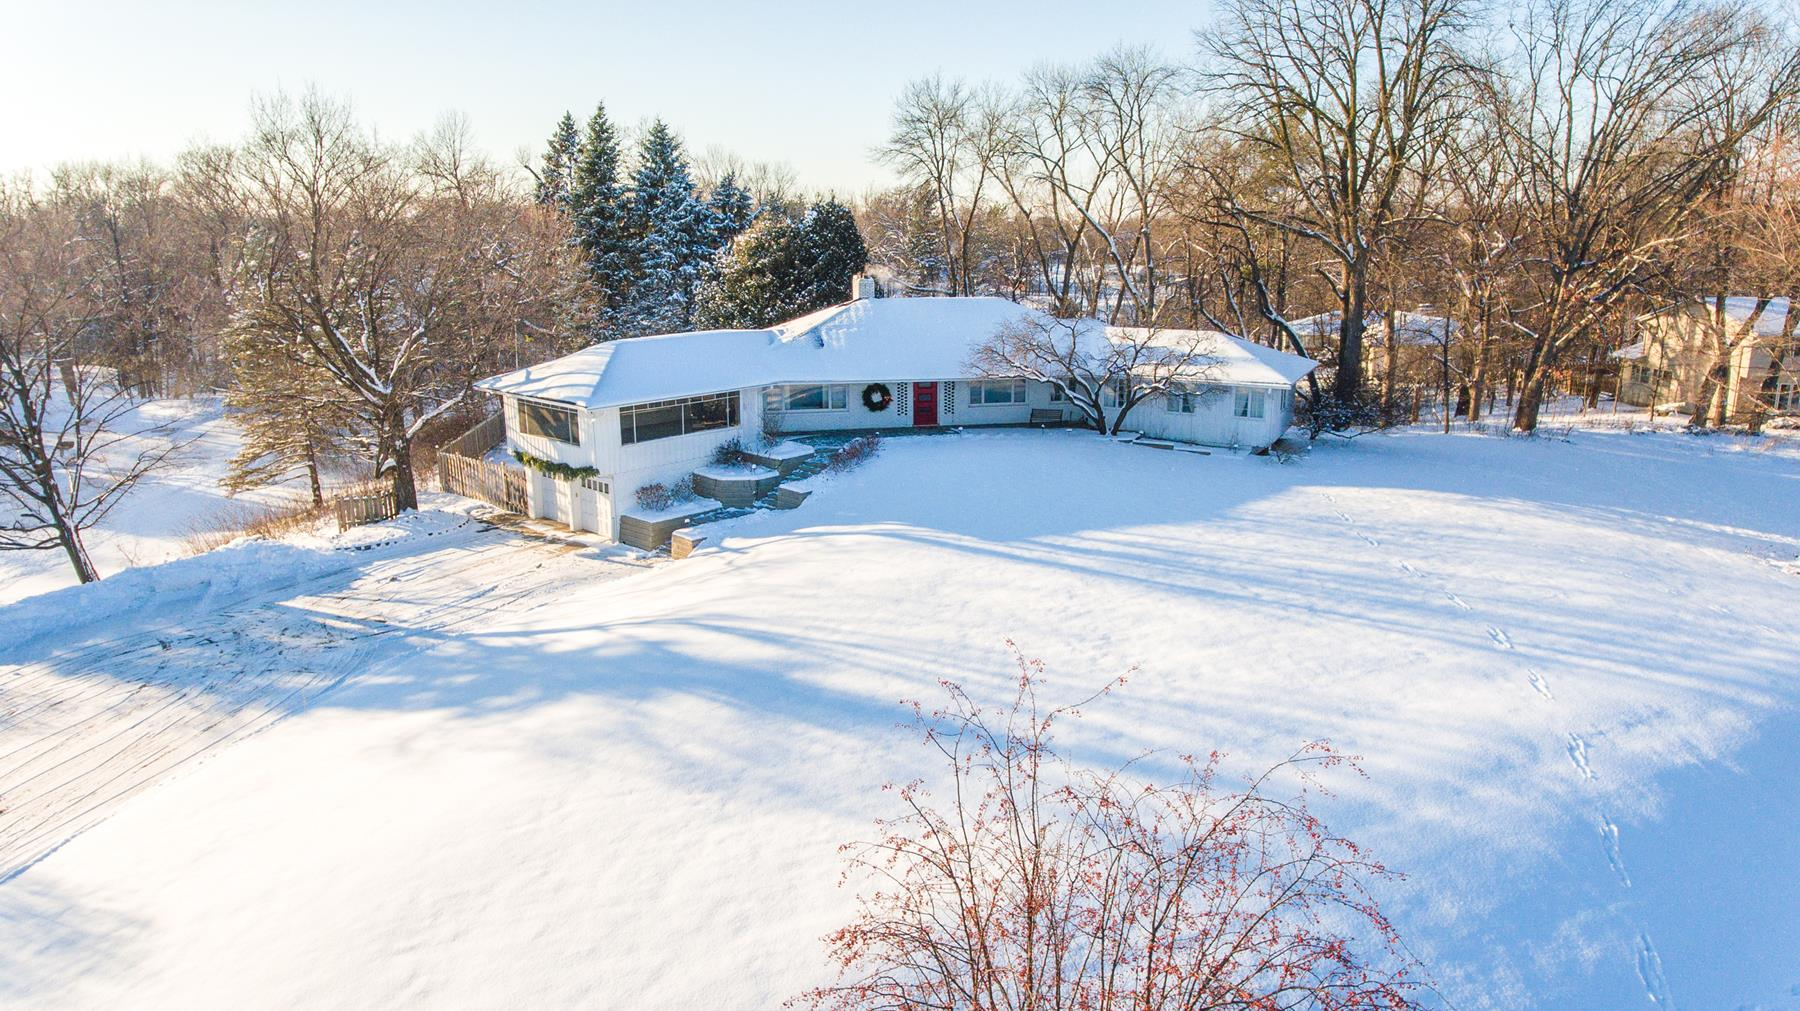 Single Family Home for Sale at 405 Narcissus Lane N Plymouth, Minnesota, 55447 United States